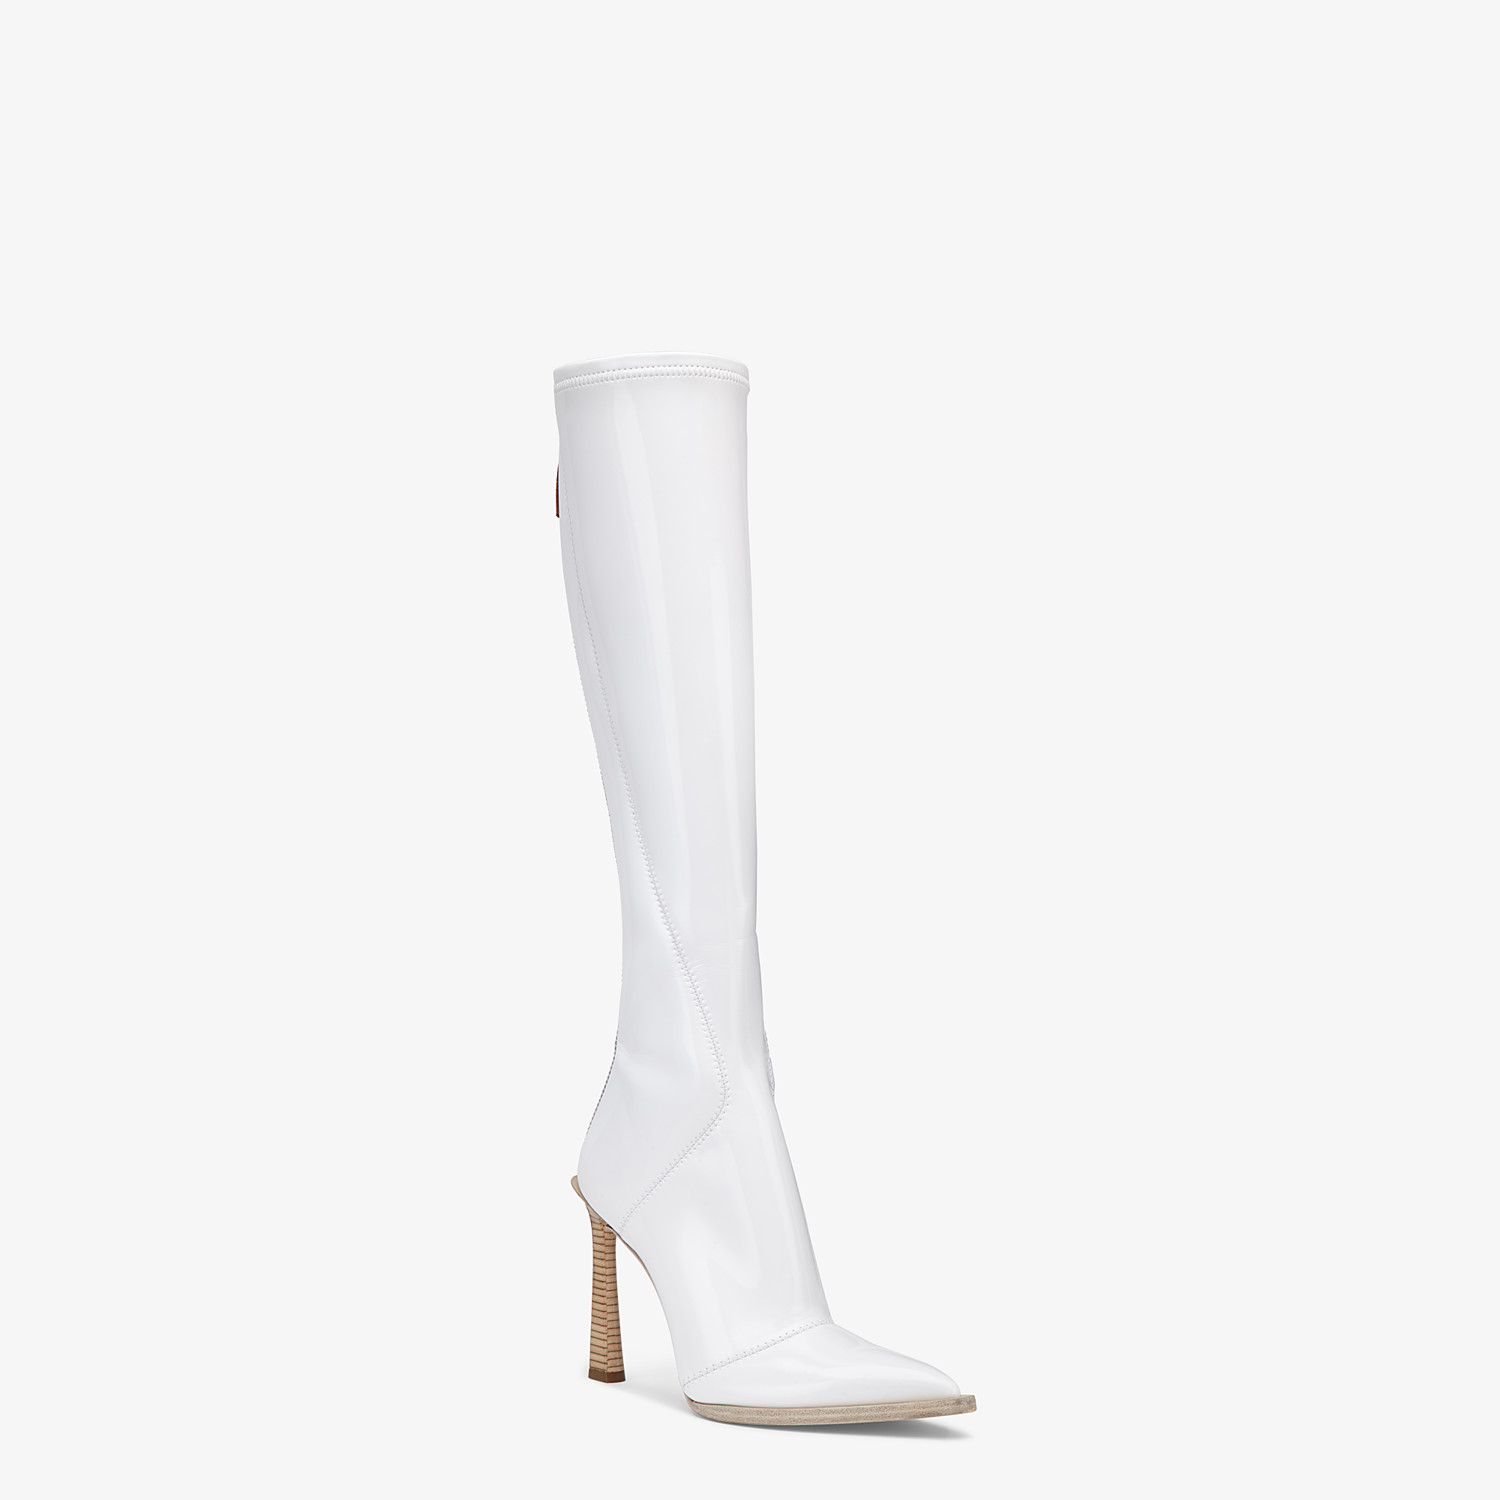 FENDI BOOTS - Boot in glossy white neoprene - view 2 detail